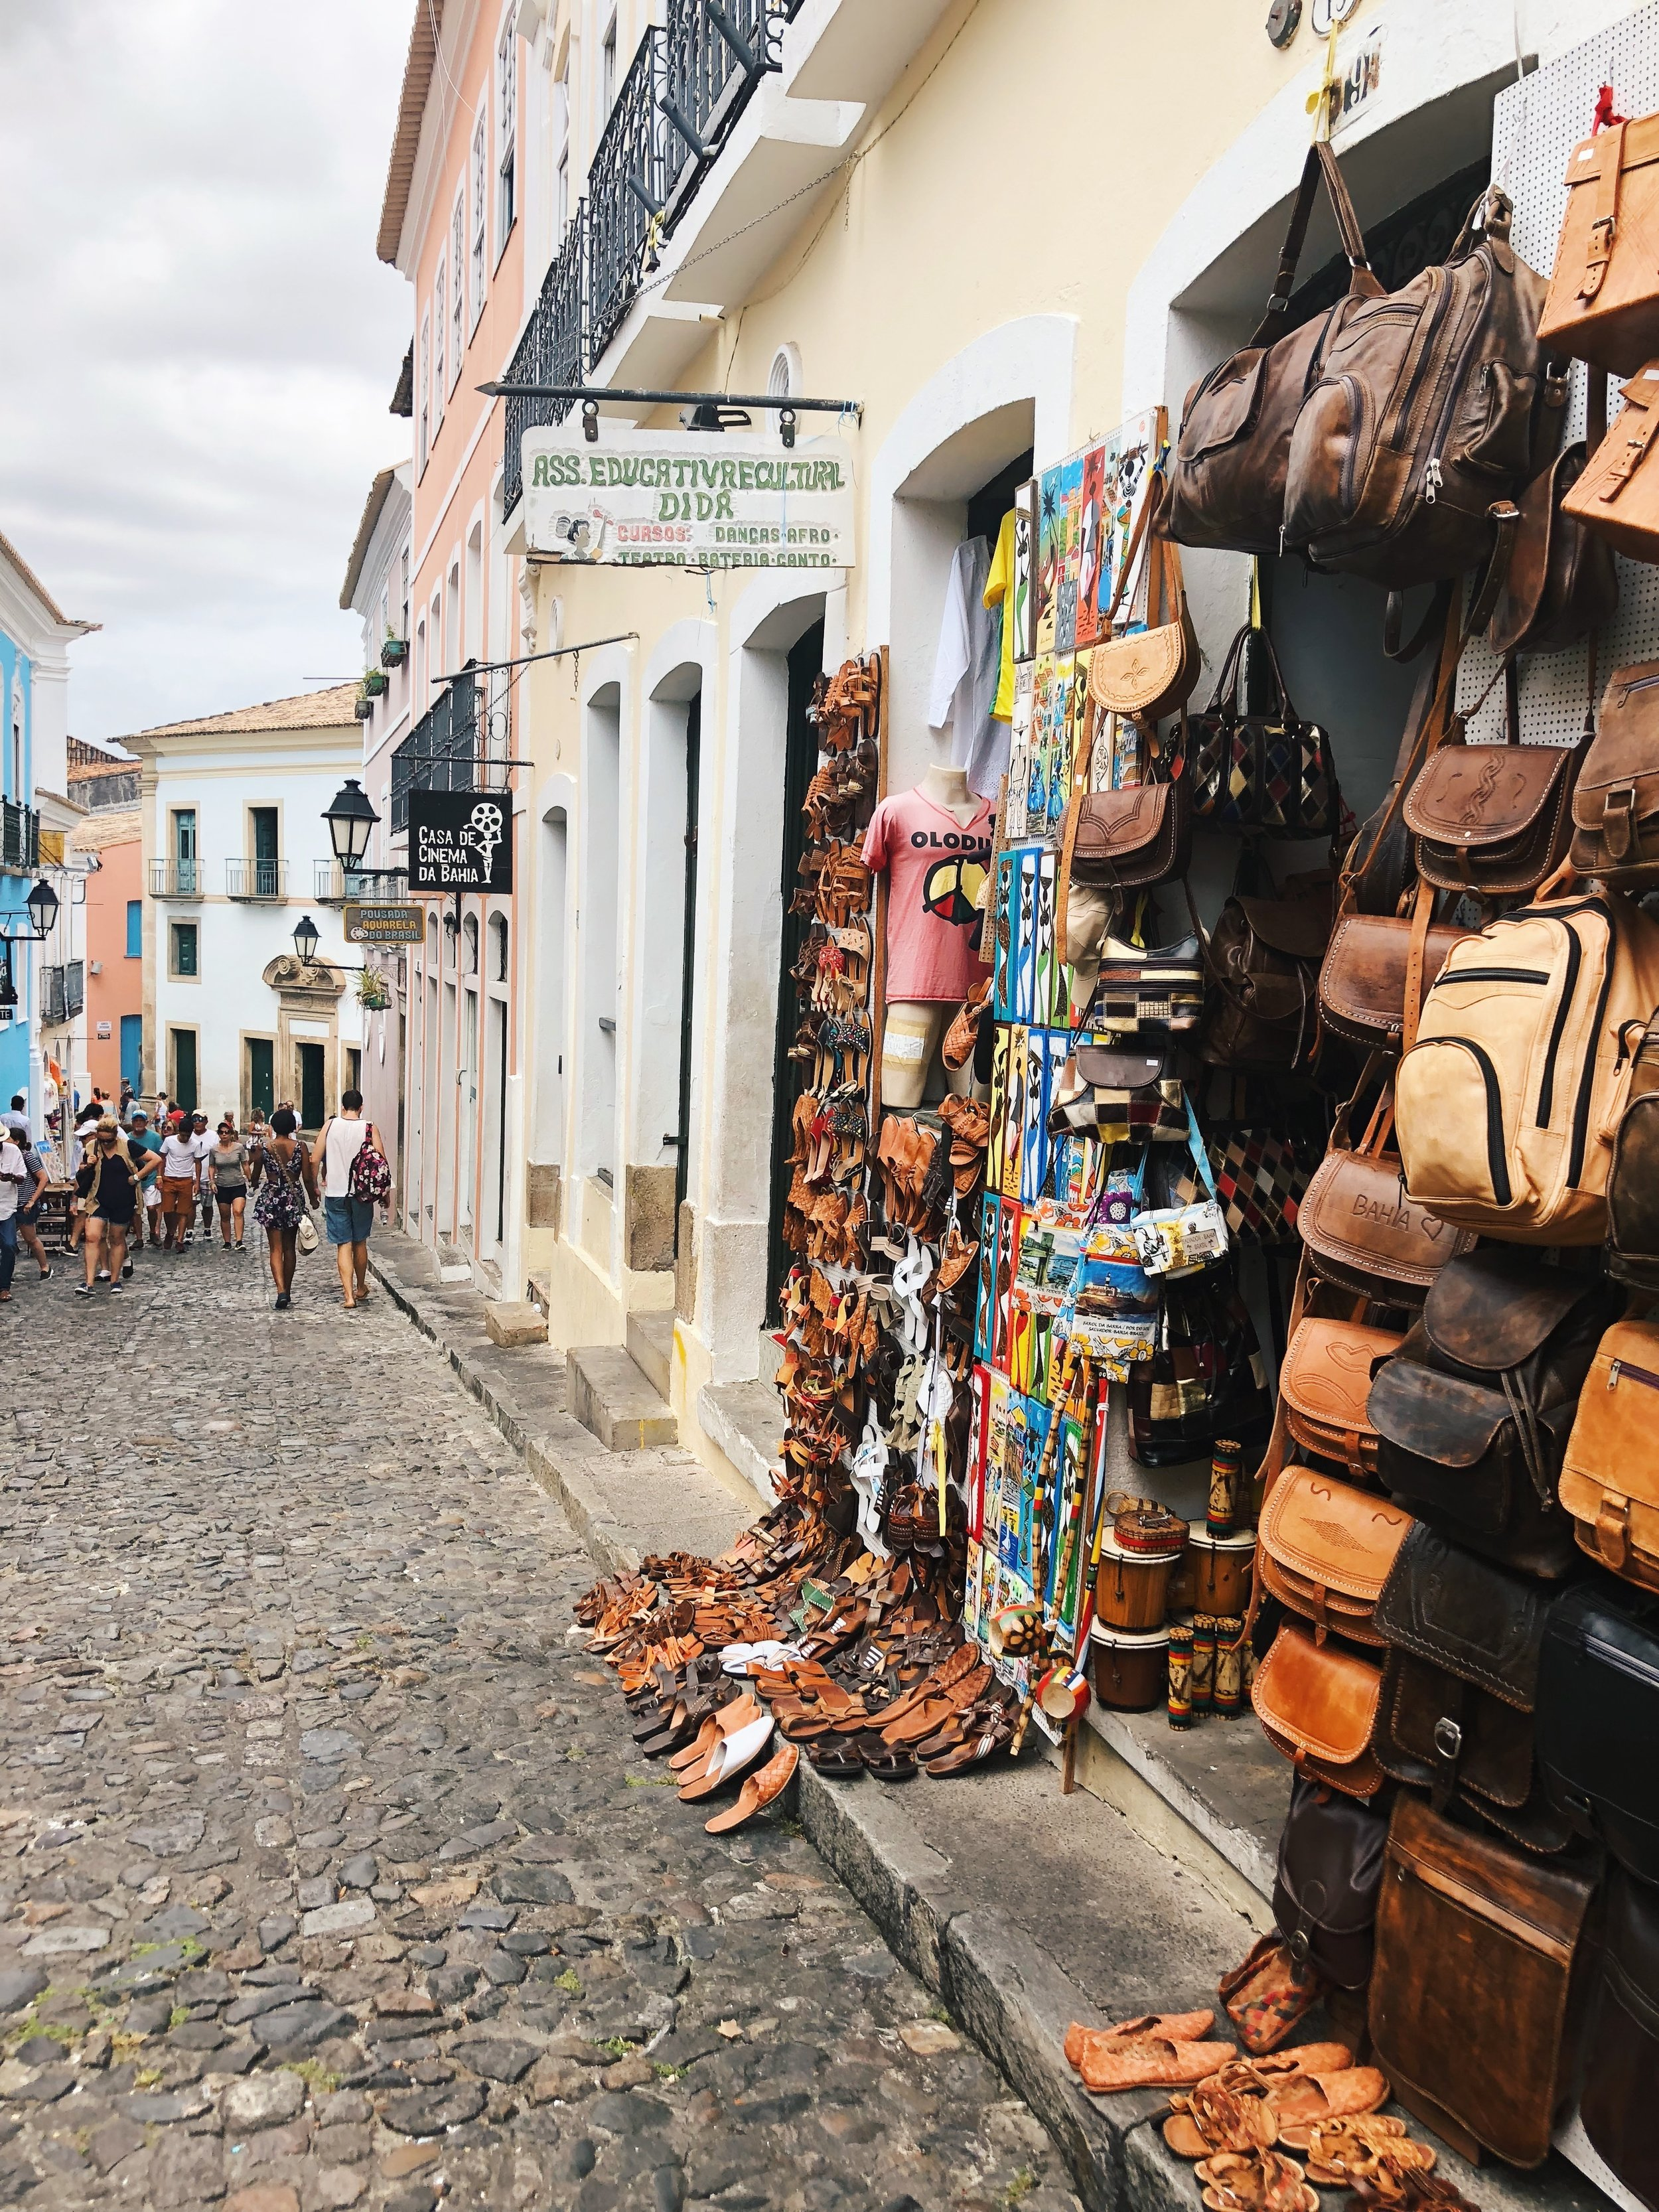 12 Culturally- Rich Things to Do in Salvador, Brazil